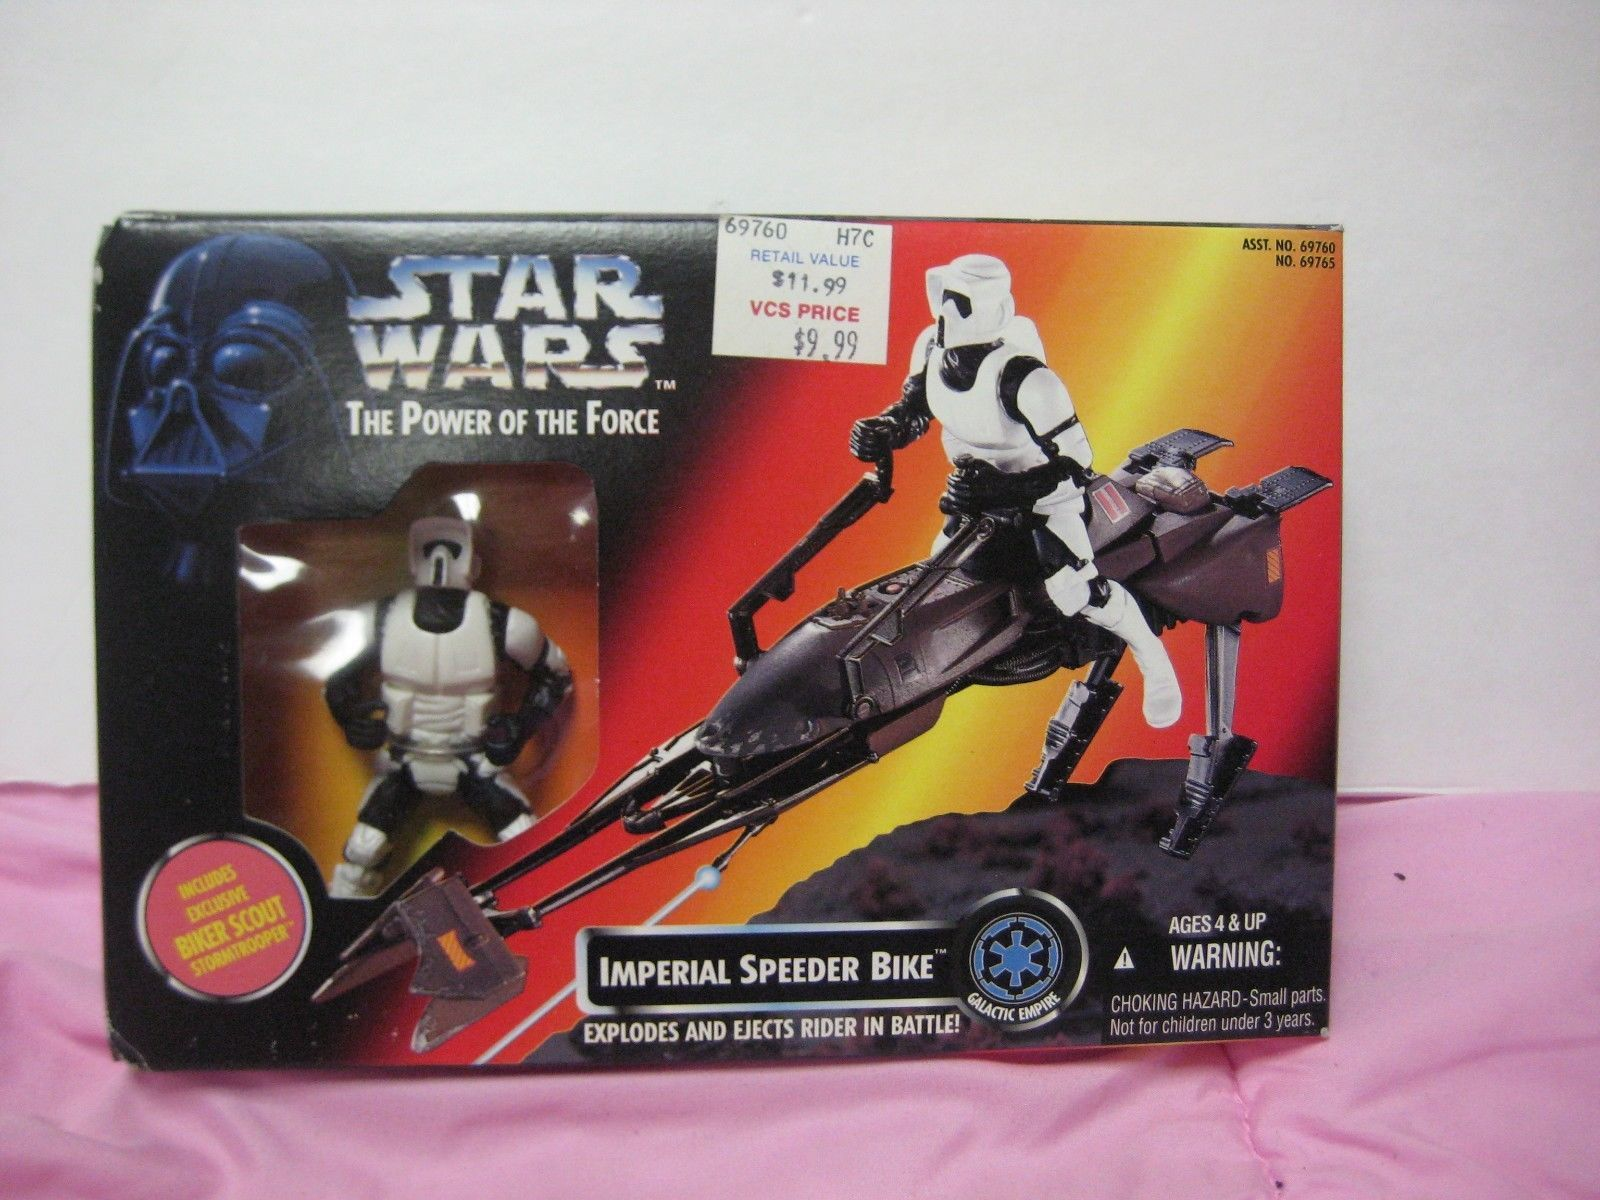 Atar Wars The Power Of The Force Imperial Speeder Bike Action- & Spielfiguren